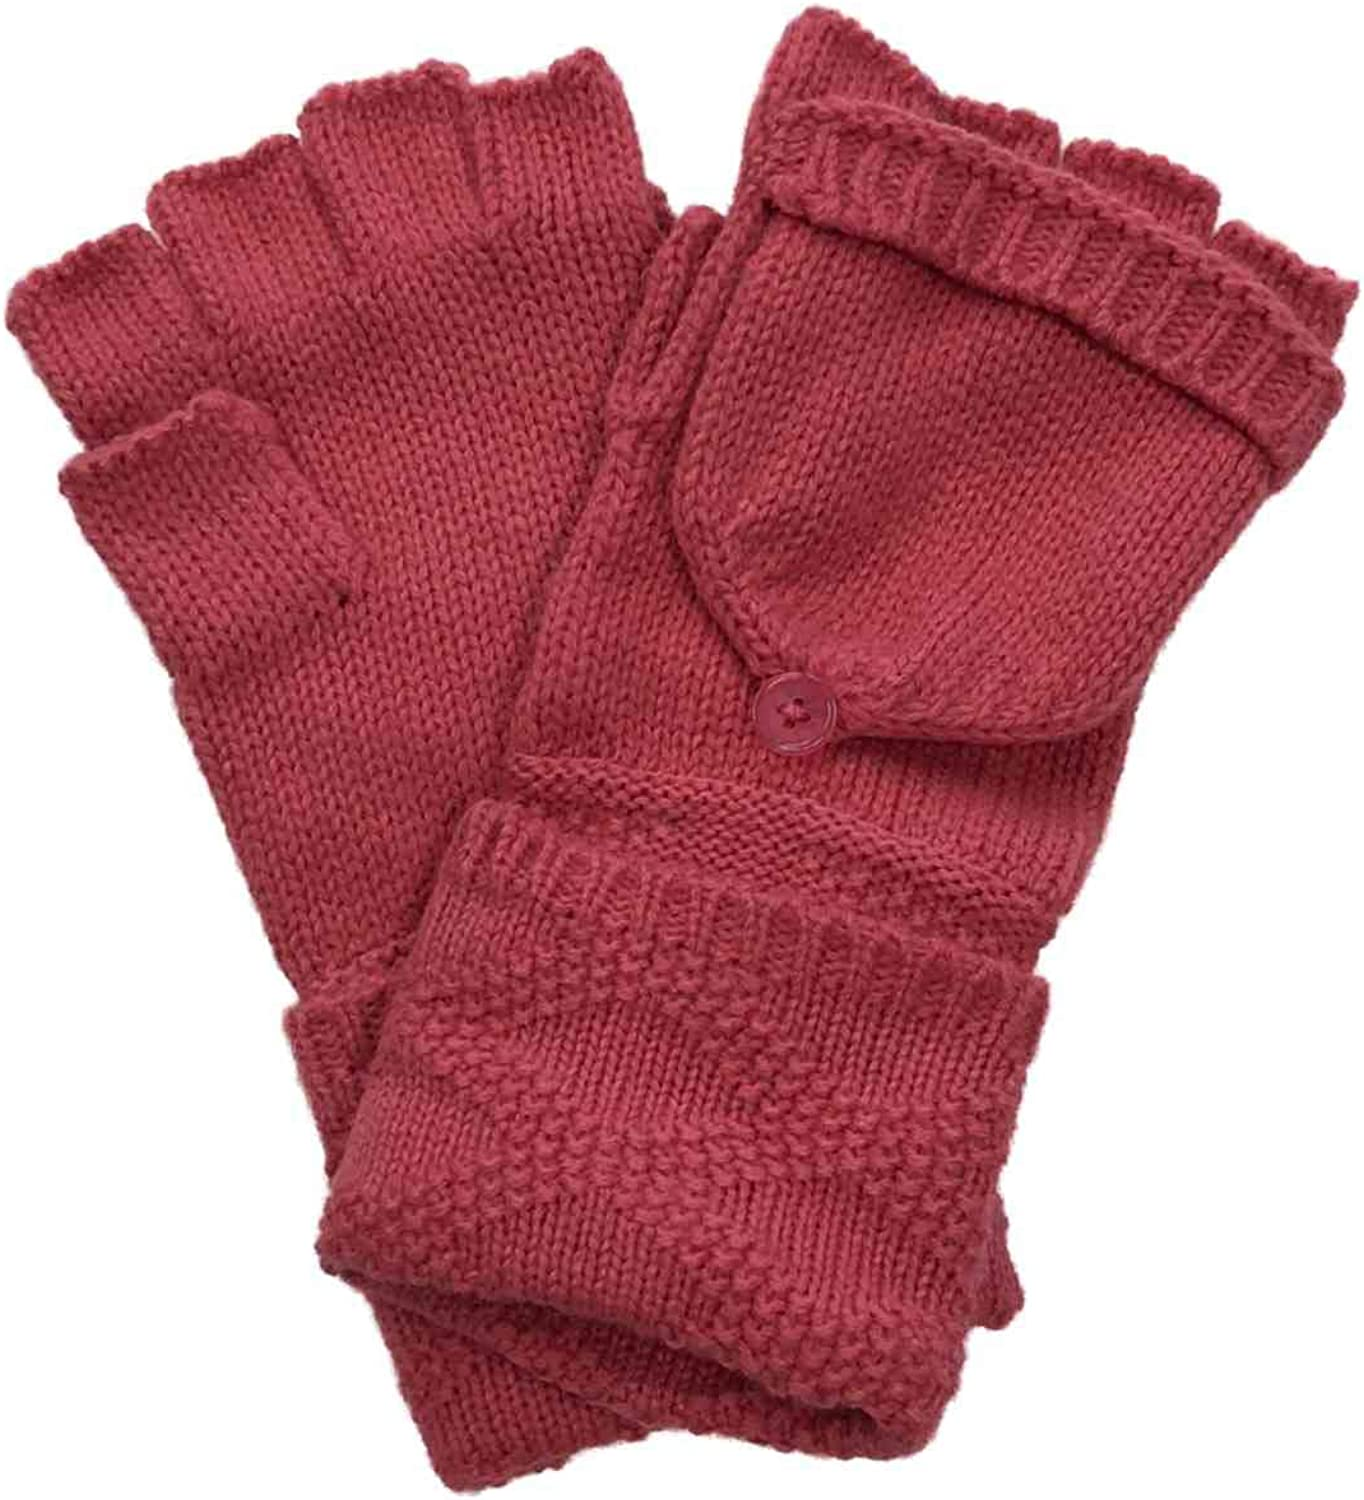 Womens Cuffed Pink Cable Knit Fingerless Flip Top Convertible Gloves